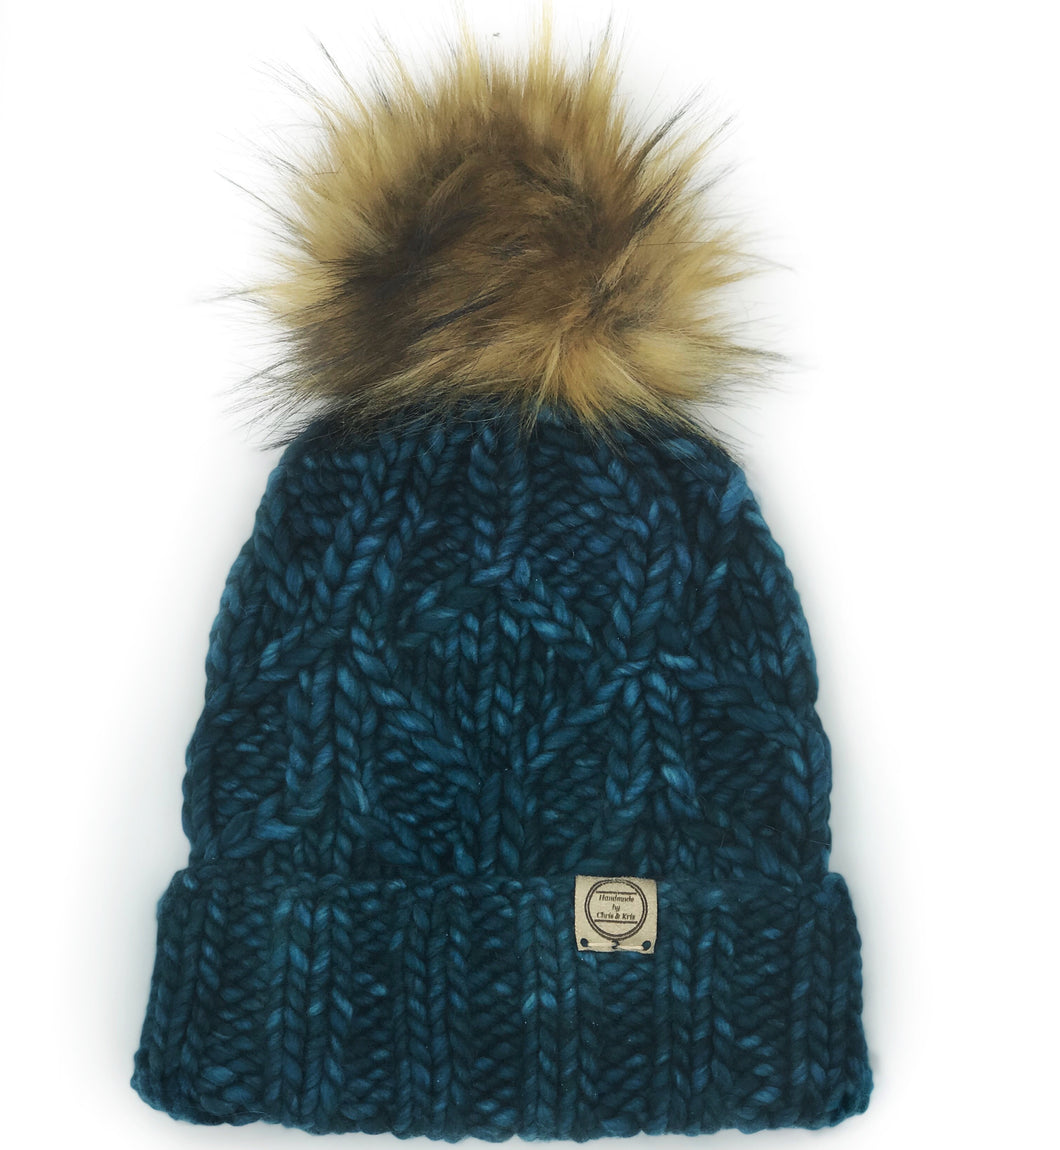 The Luxe Super Bulky Fold Up Hexa Beanie - Teal Feather